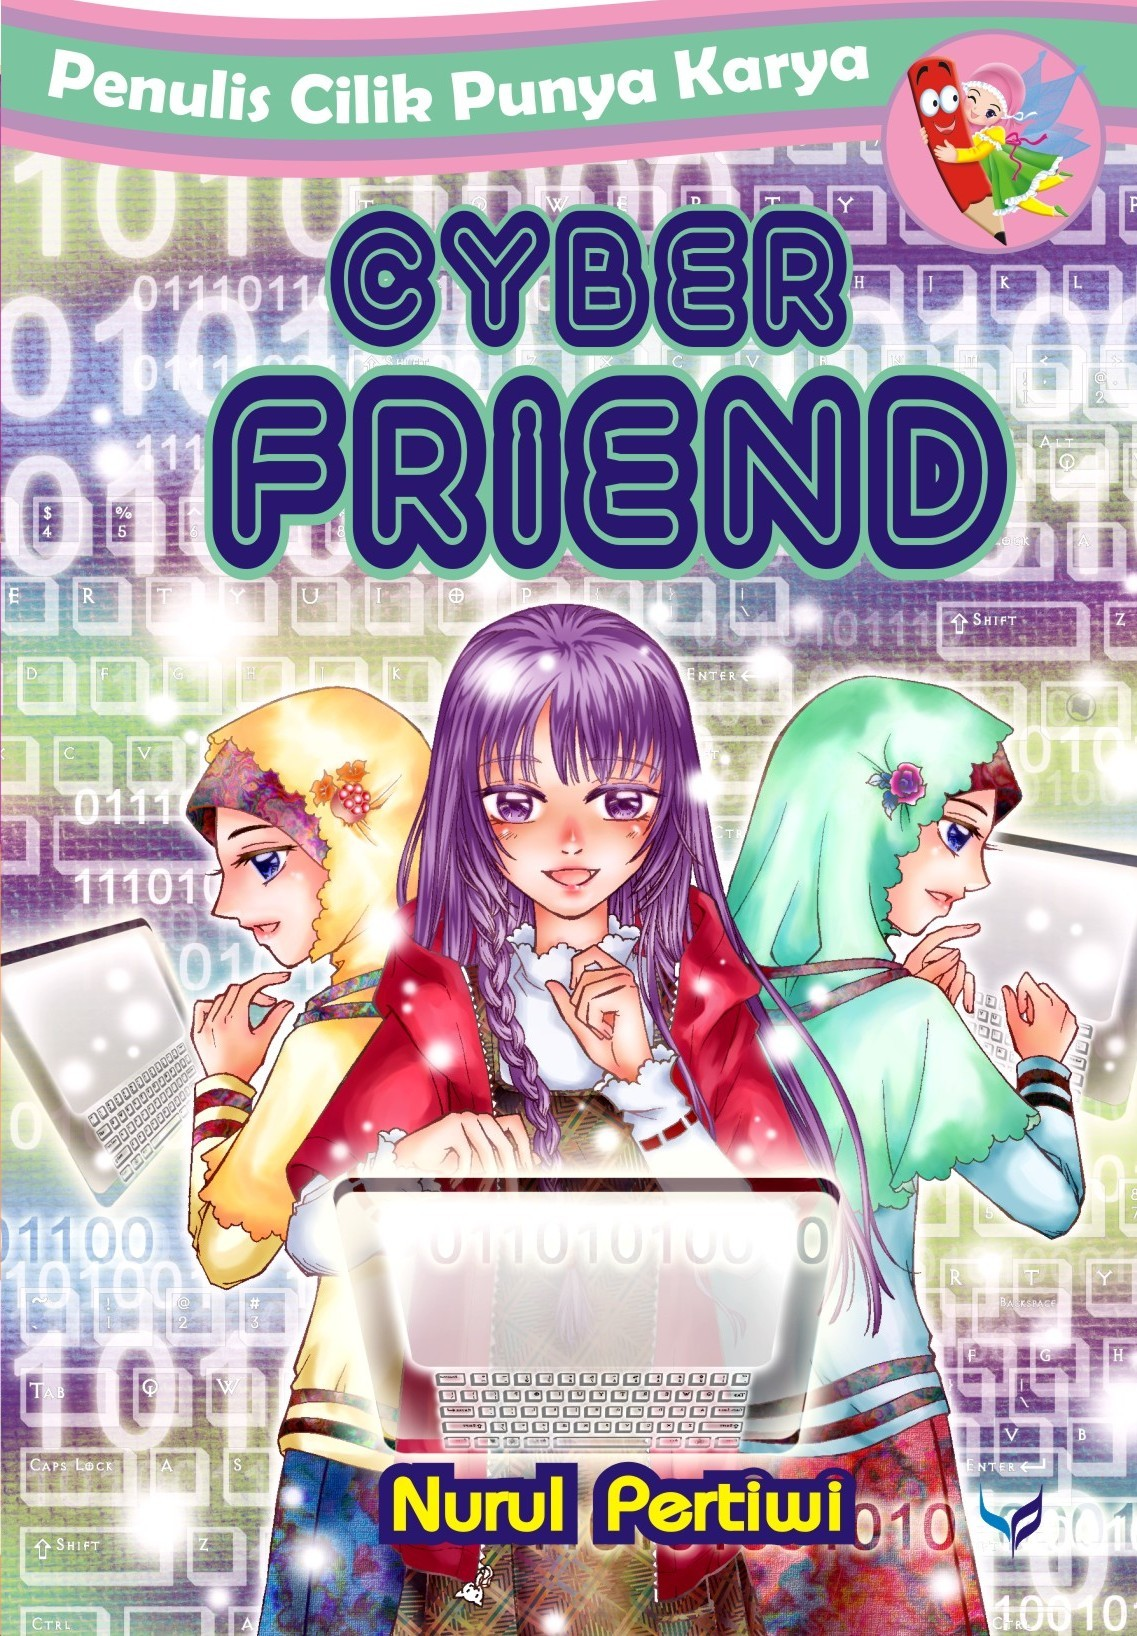 cyber friend Angelica anne a vermug iv- strita27 almost all of us know that there's a big difference between cyber friends and real life friends many people think that these two both have the same level of friendship.